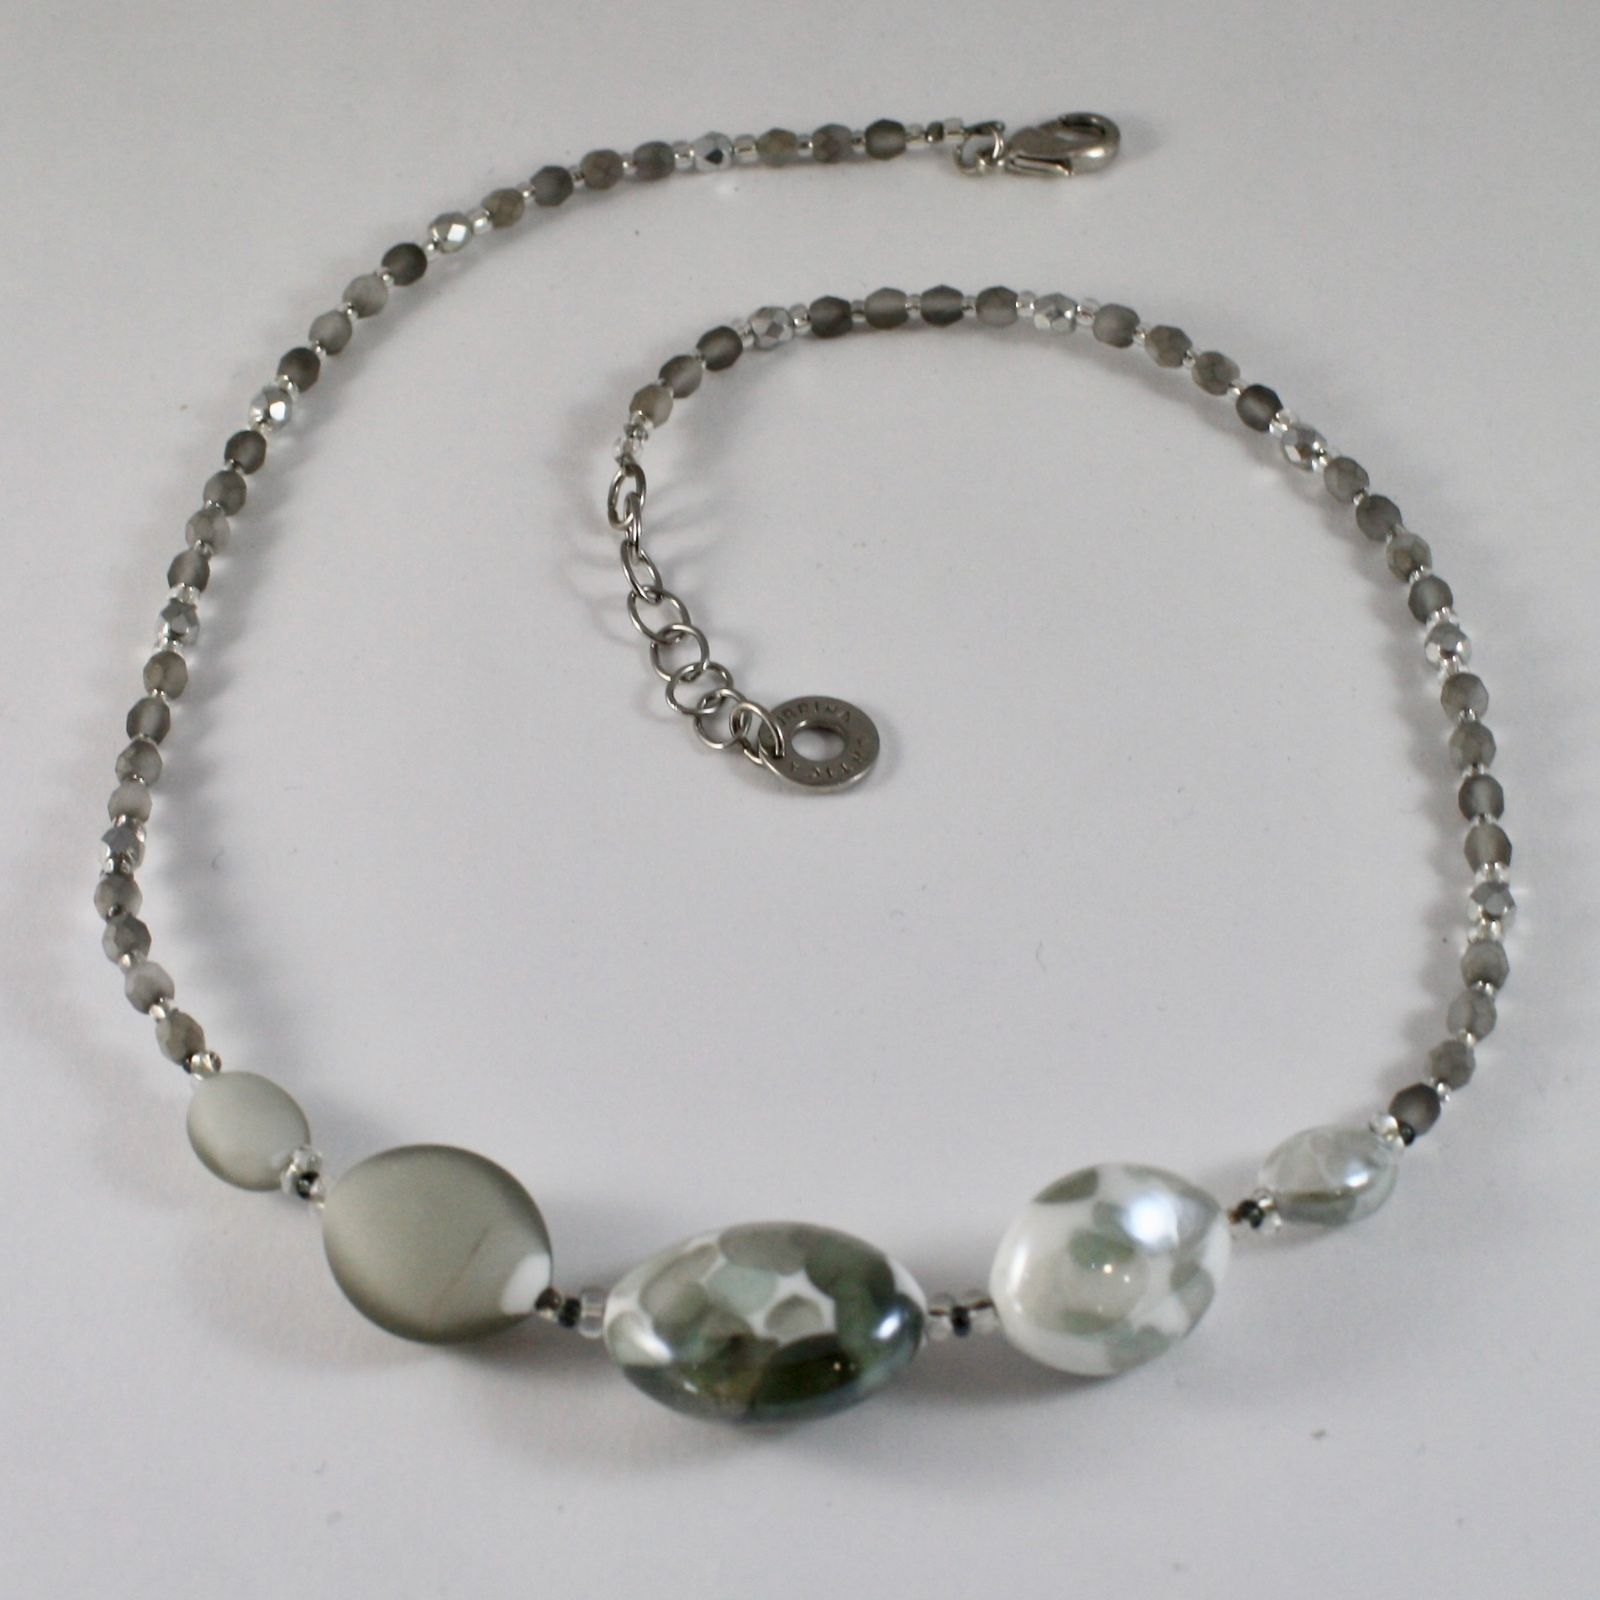 NECKLACE ANTIQUE MURRINA VENICE WITH MURANO GLASS ADJUSTABLE, GRAY AND WHITE